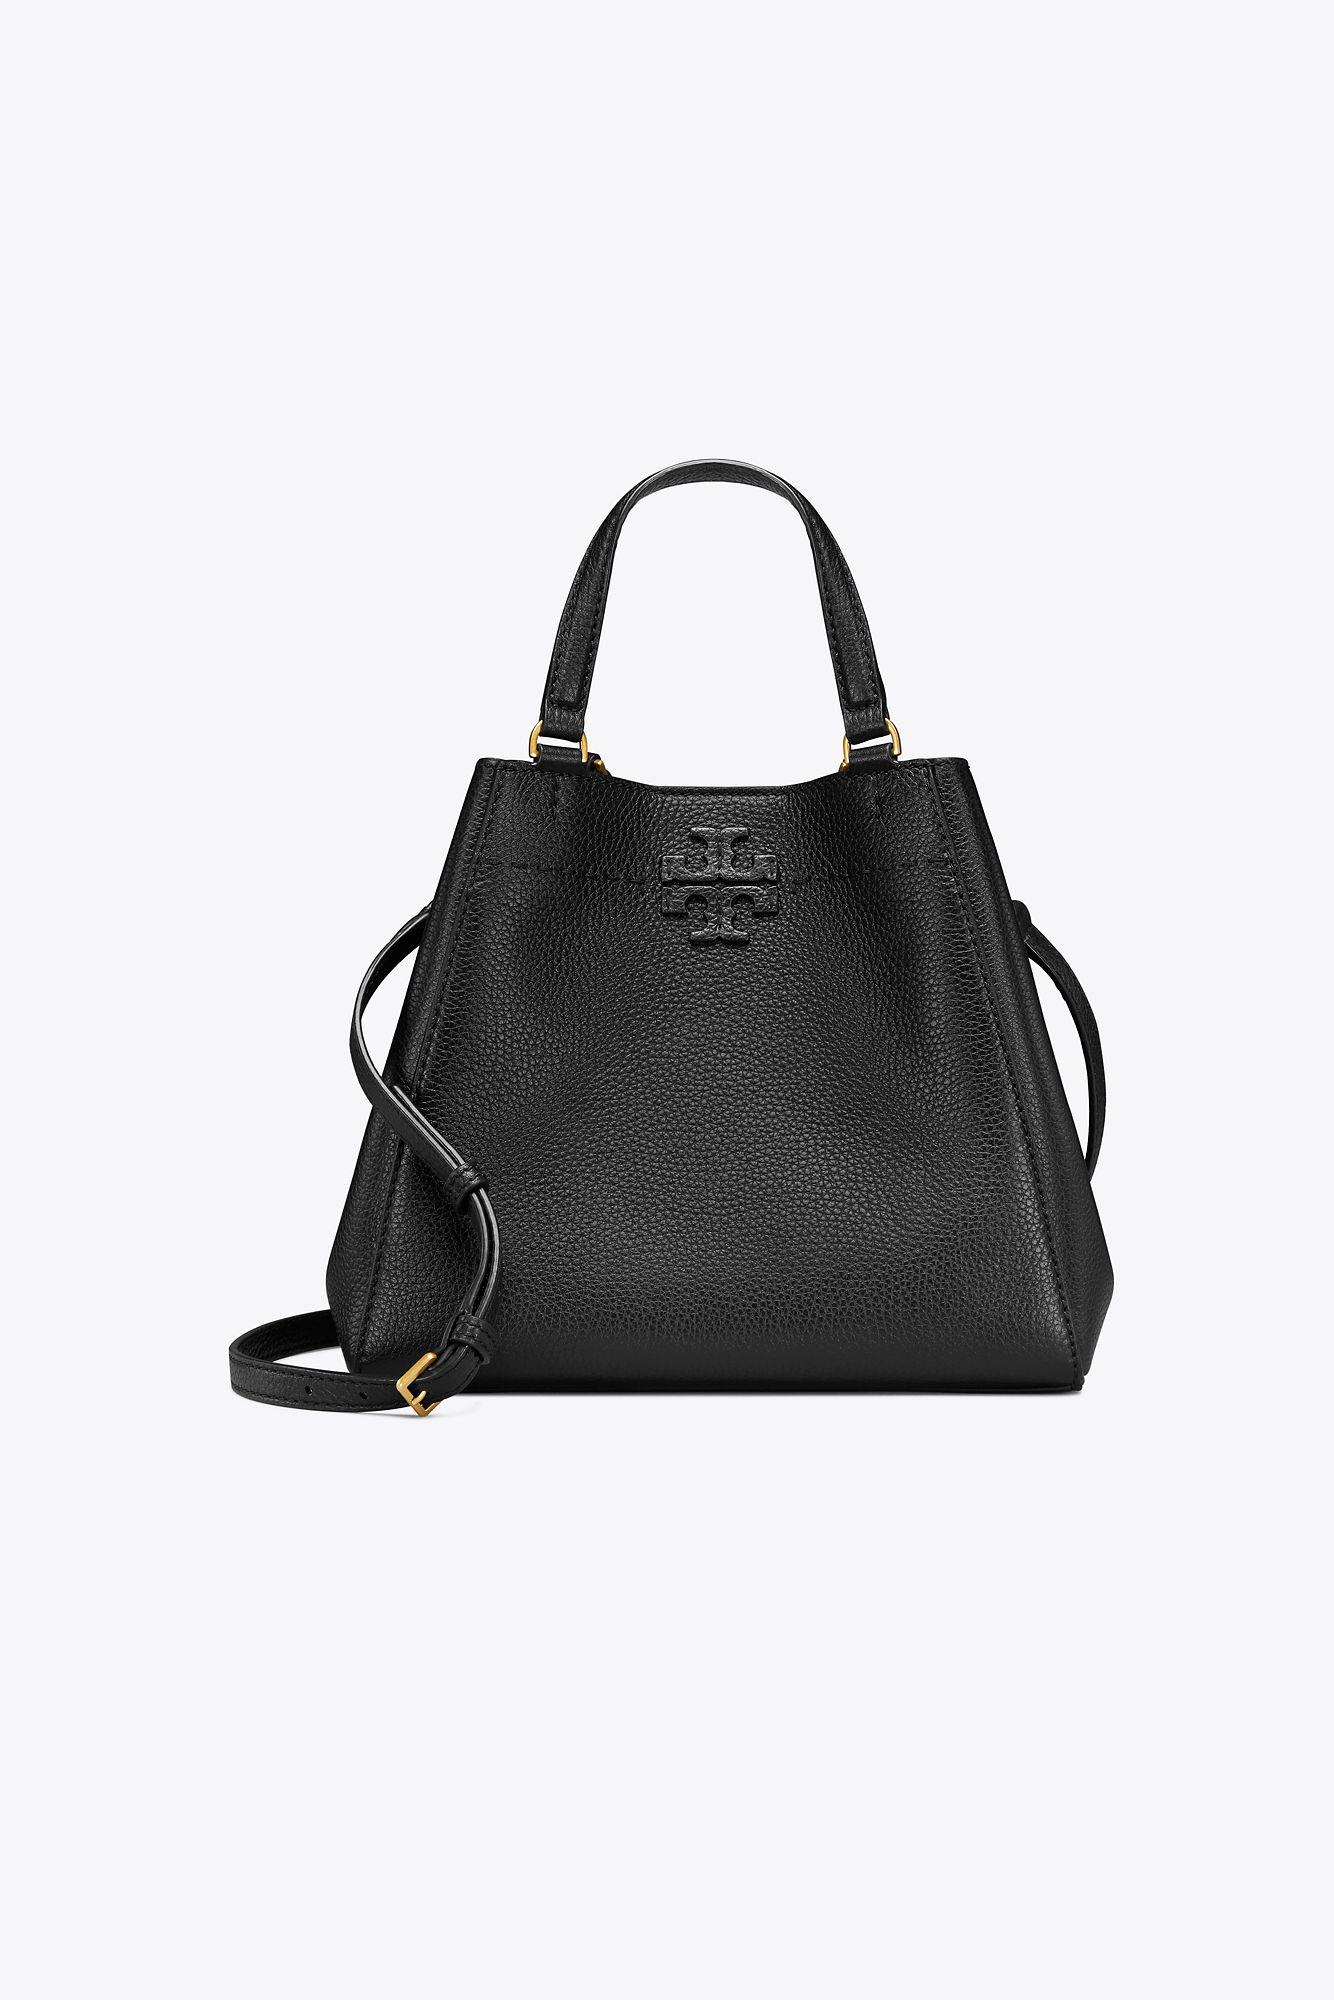 bac2d1306f44 Lyst - Tory Burch Mcgraw Small Carryall in Black